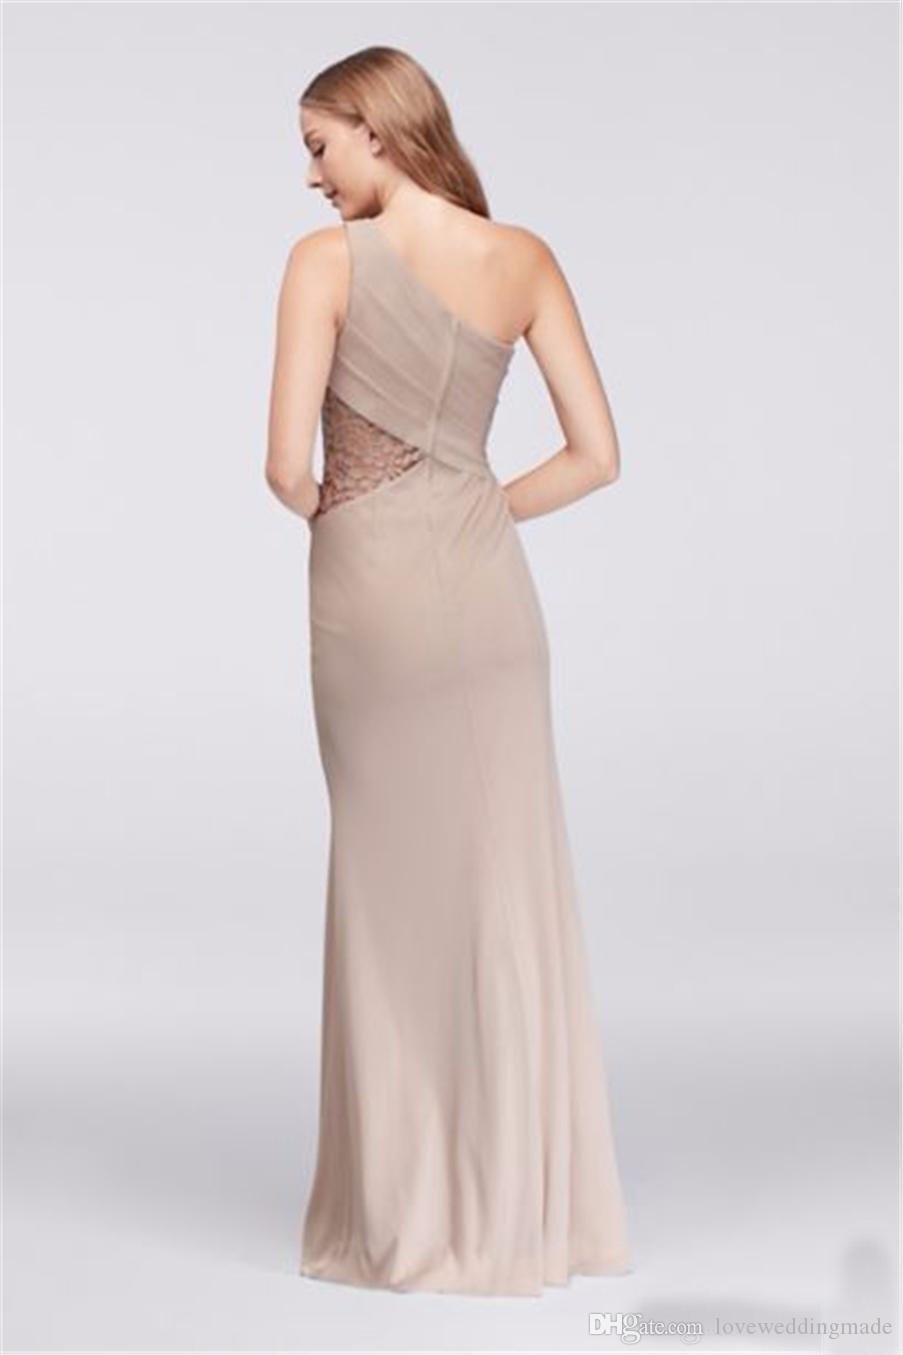 Elegant One Shoulder Chiffon Long Bridesmaid Dresses 2019 NEW Formal Evening Party Gown Lace Inset Side Split Wedding Guest Dress